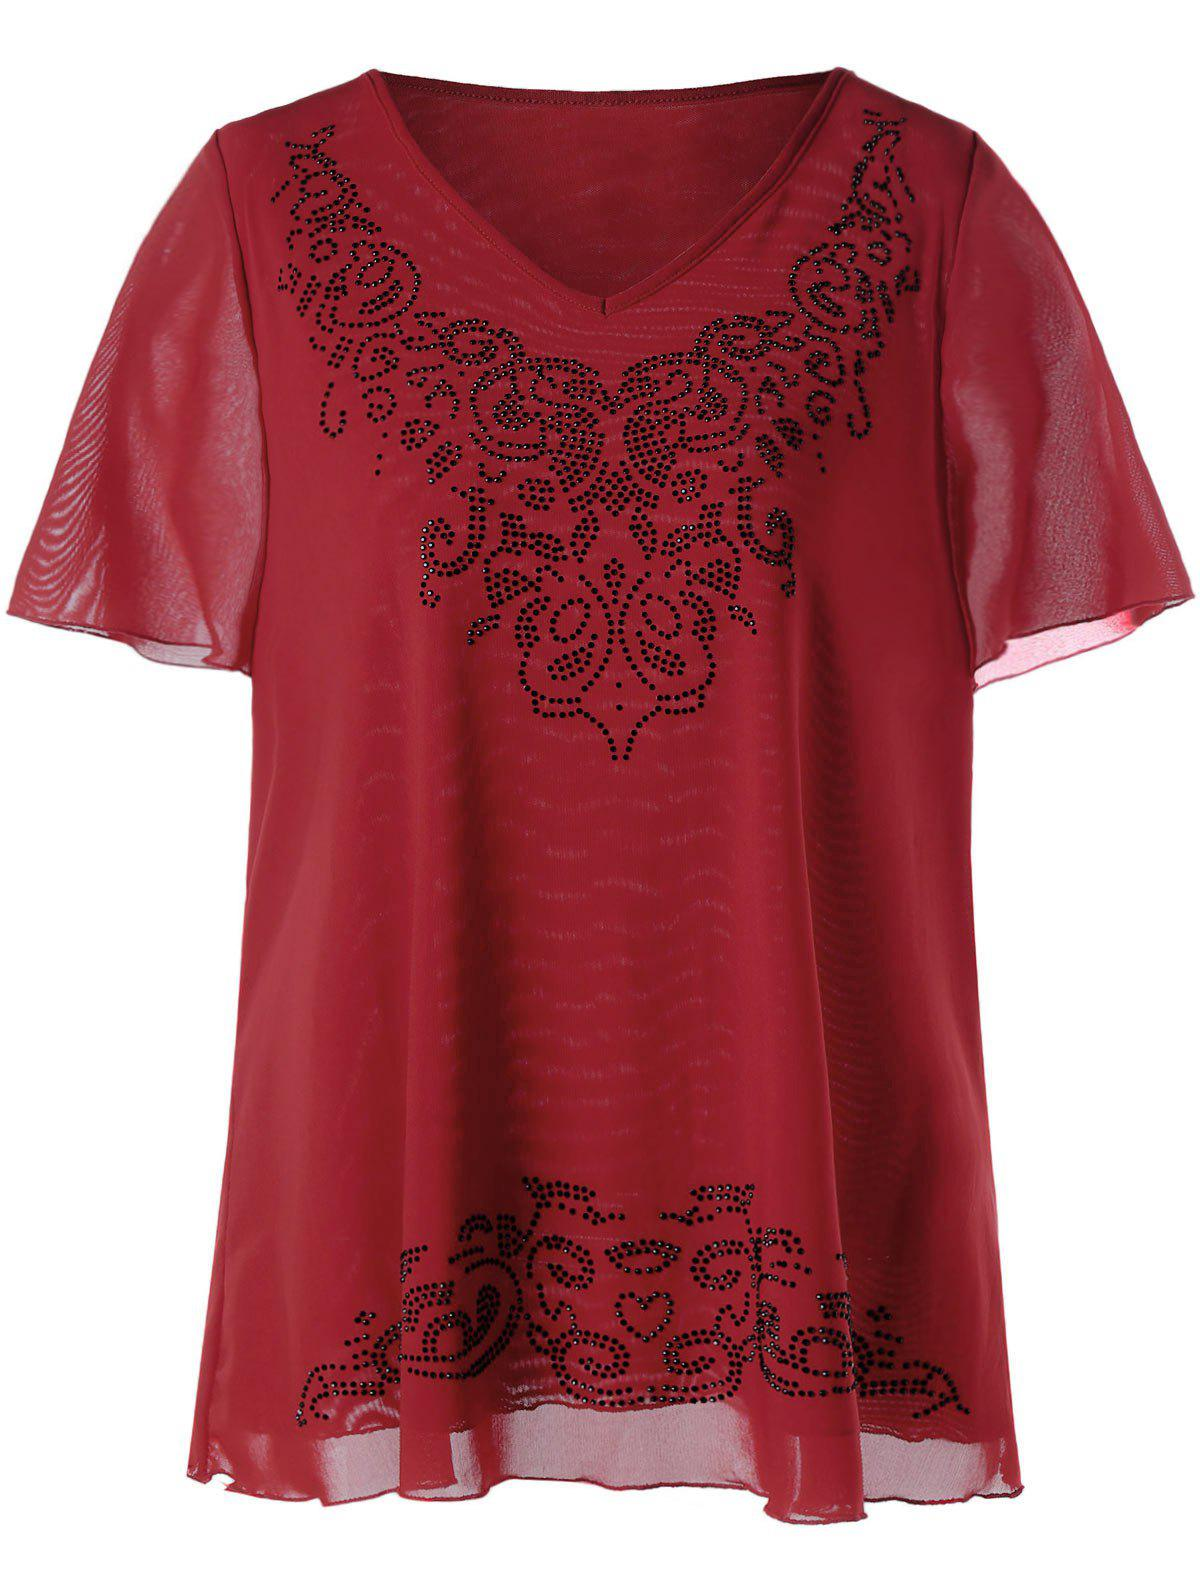 Top en mousseline de soie Embellished V-neck Top - Rouge 5XL